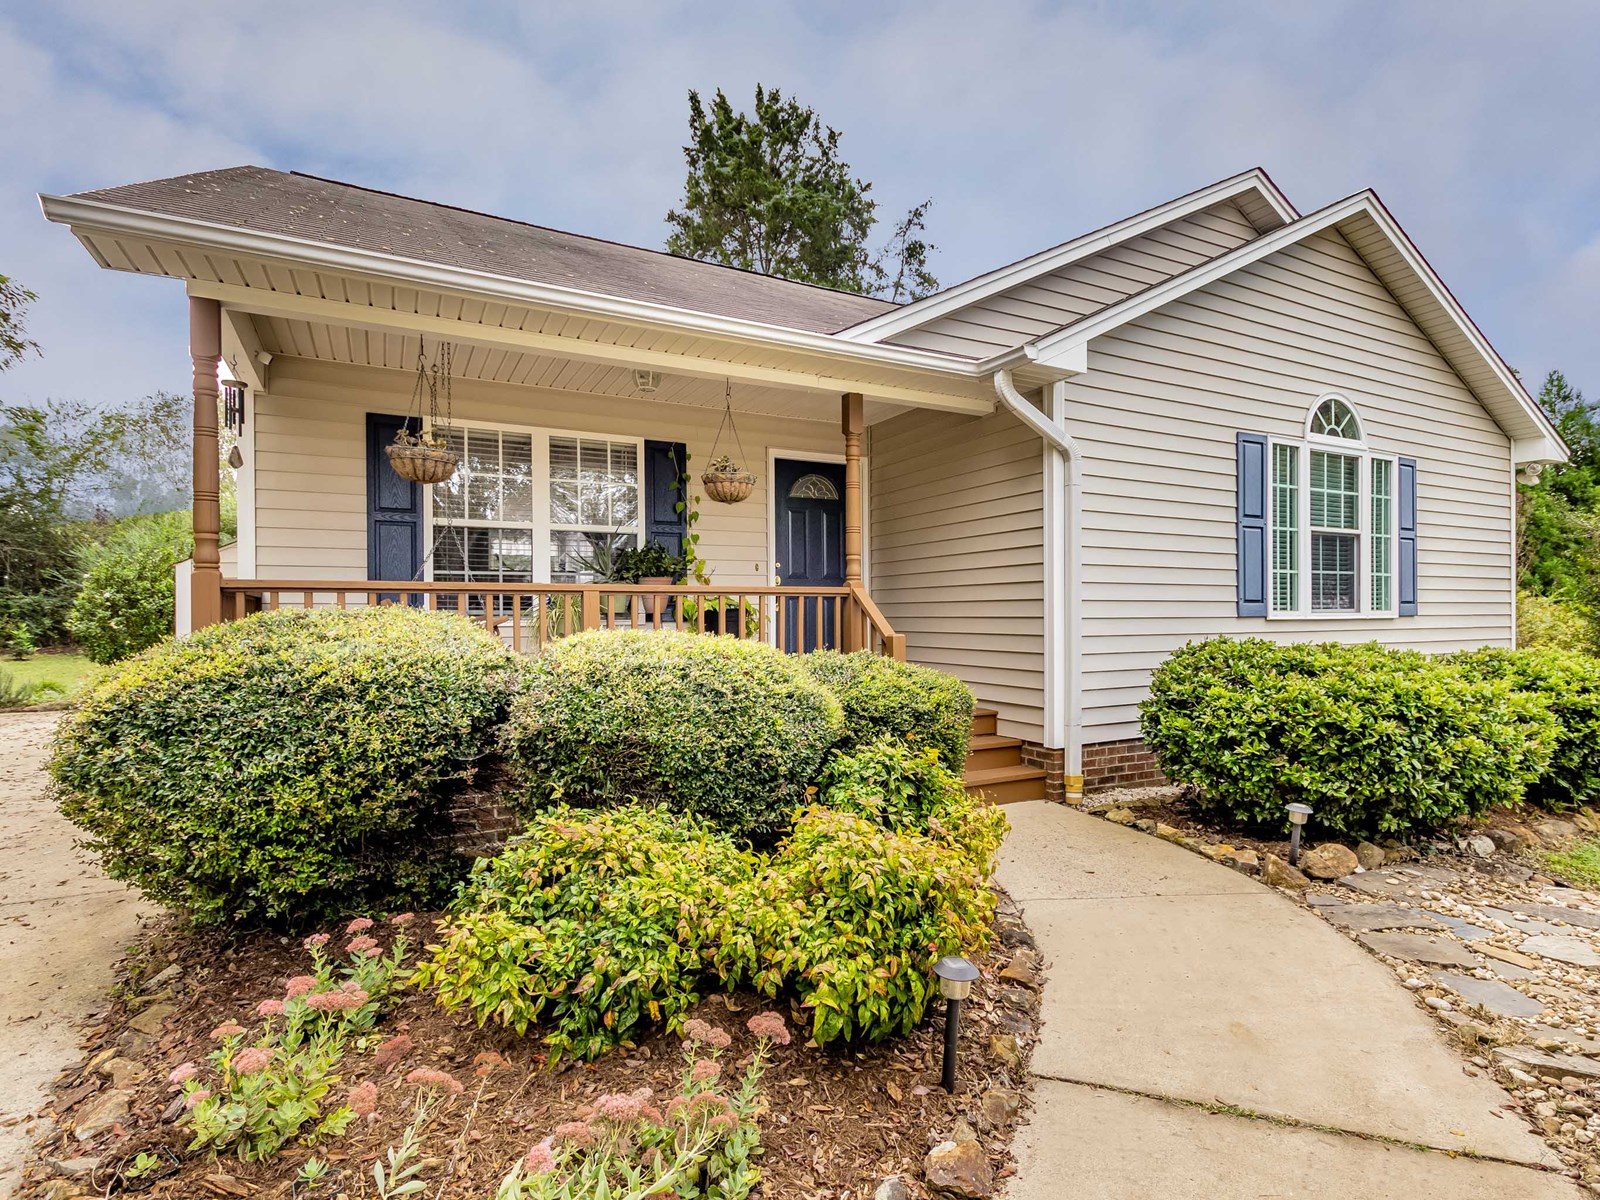 Pittsboro 3-Bedroom, 2-Bath Ranch Home in Magnolia Trace